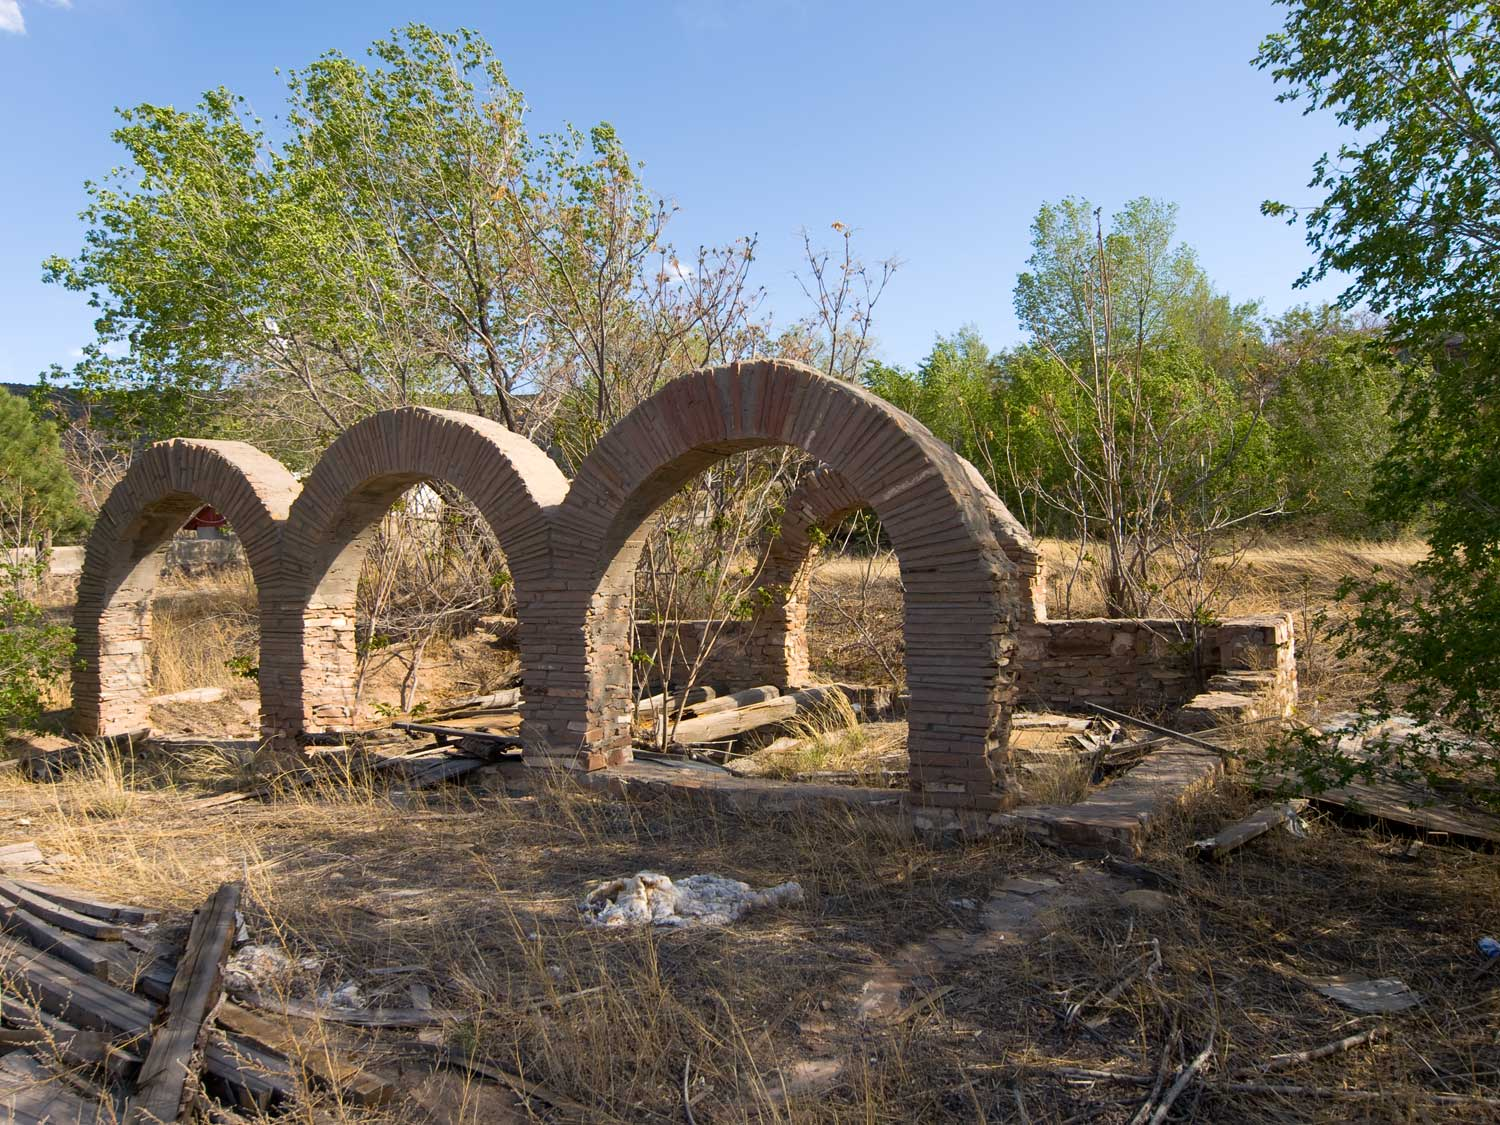 abiquiu arches author hull ray